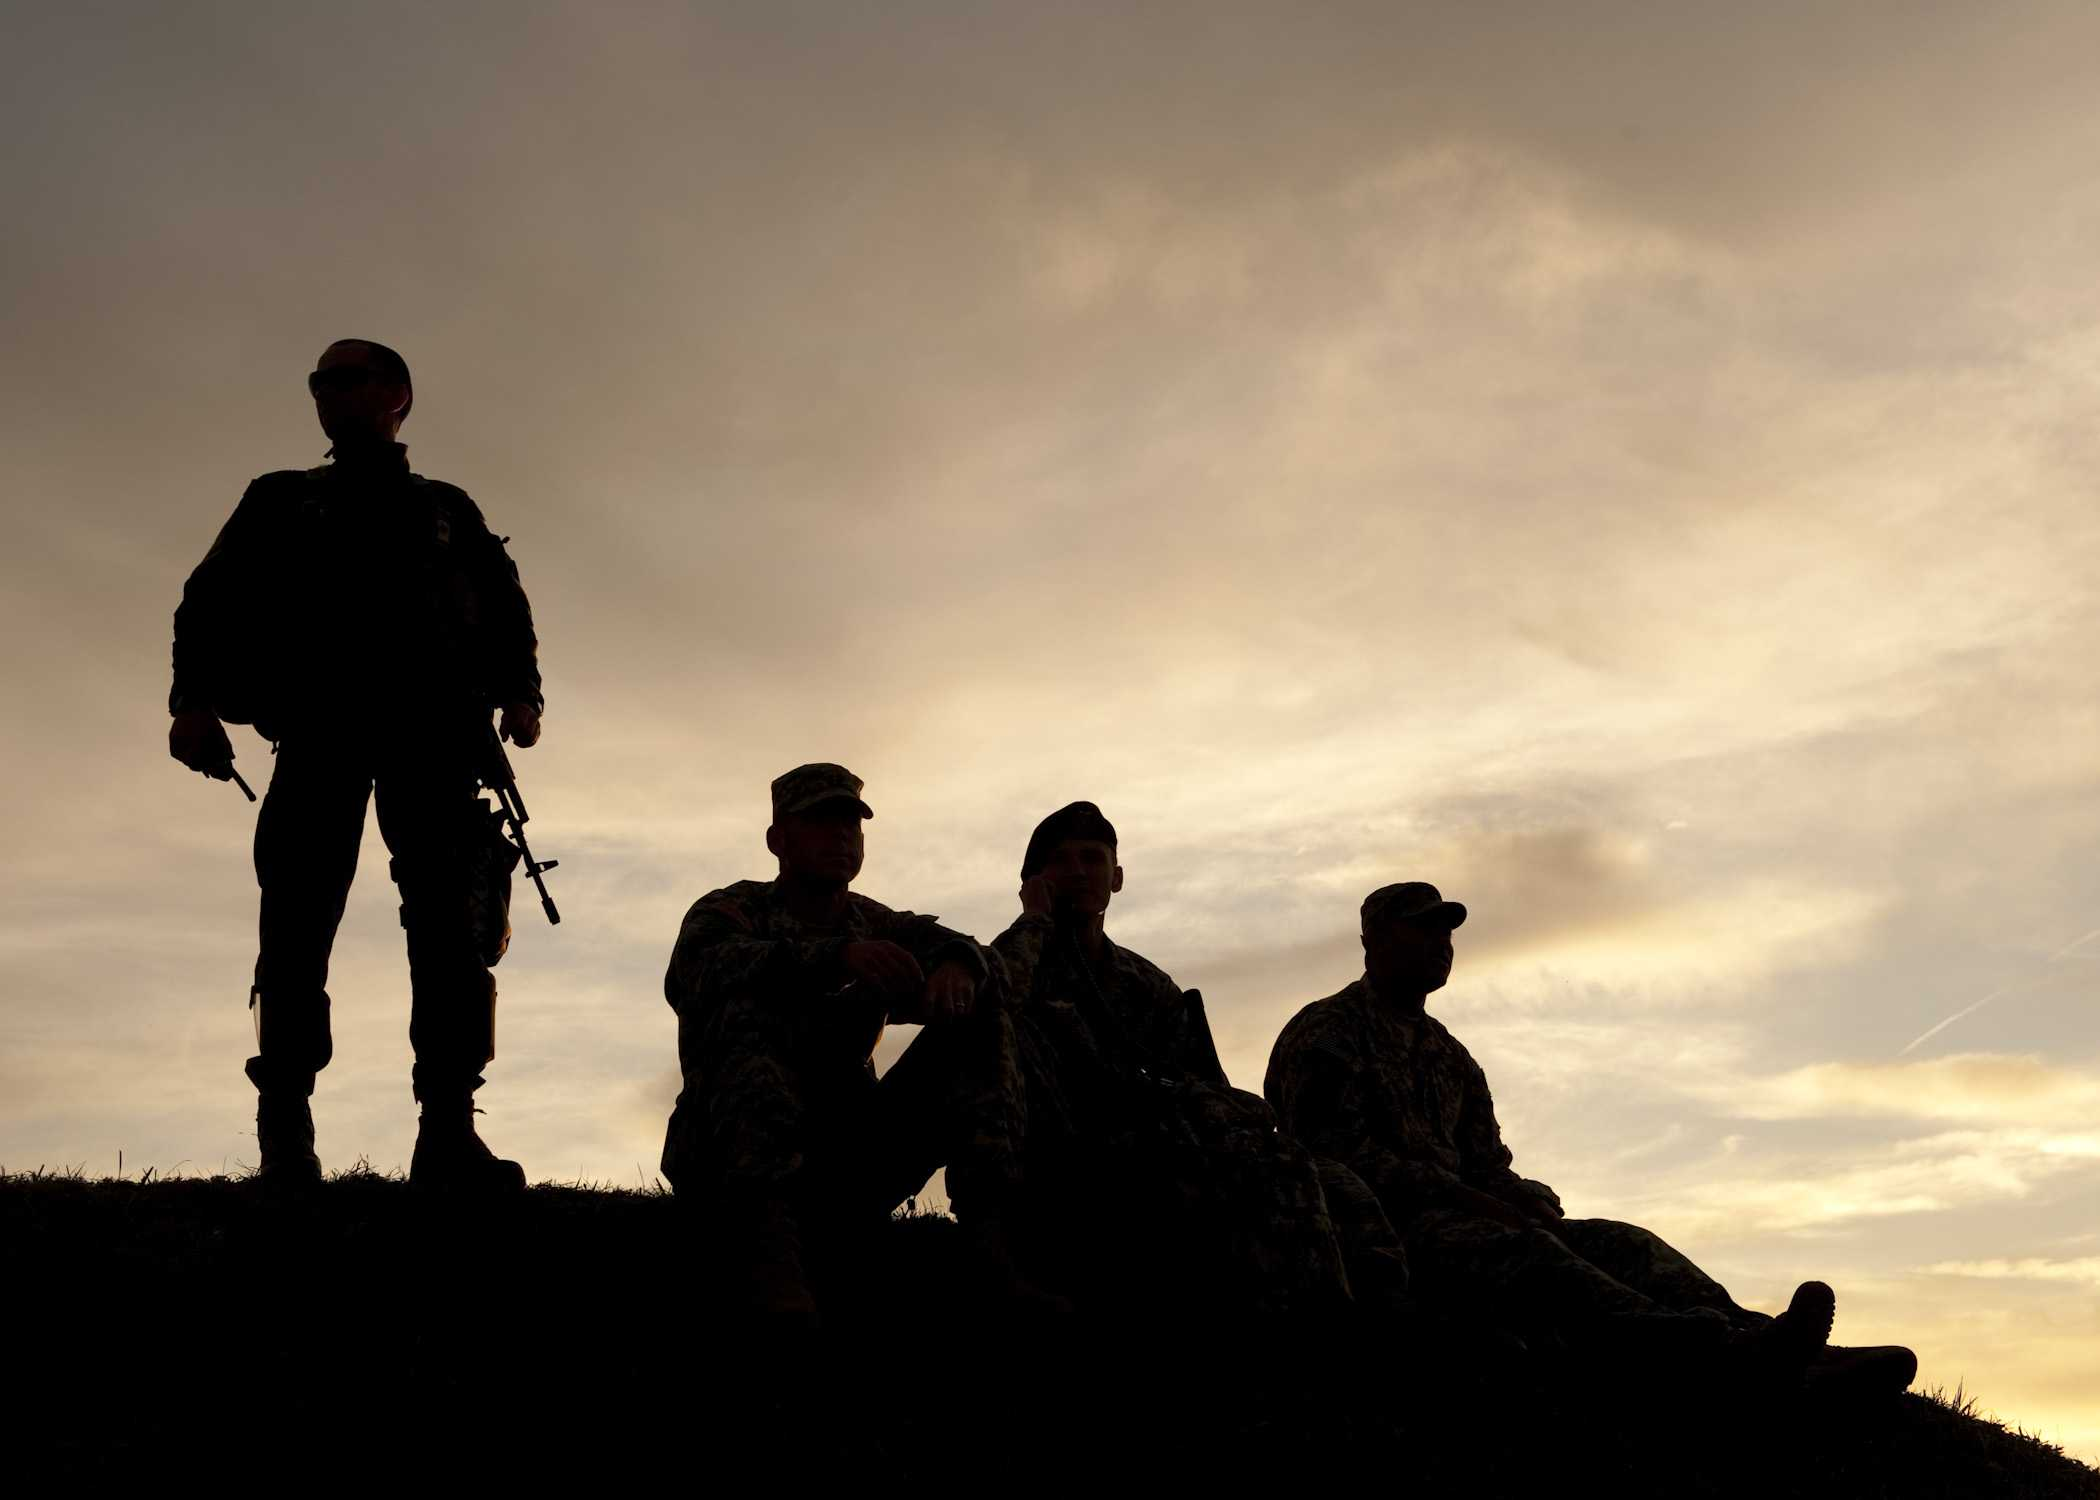 Other-Than-Honorable Discharges and Veterans' Benefits